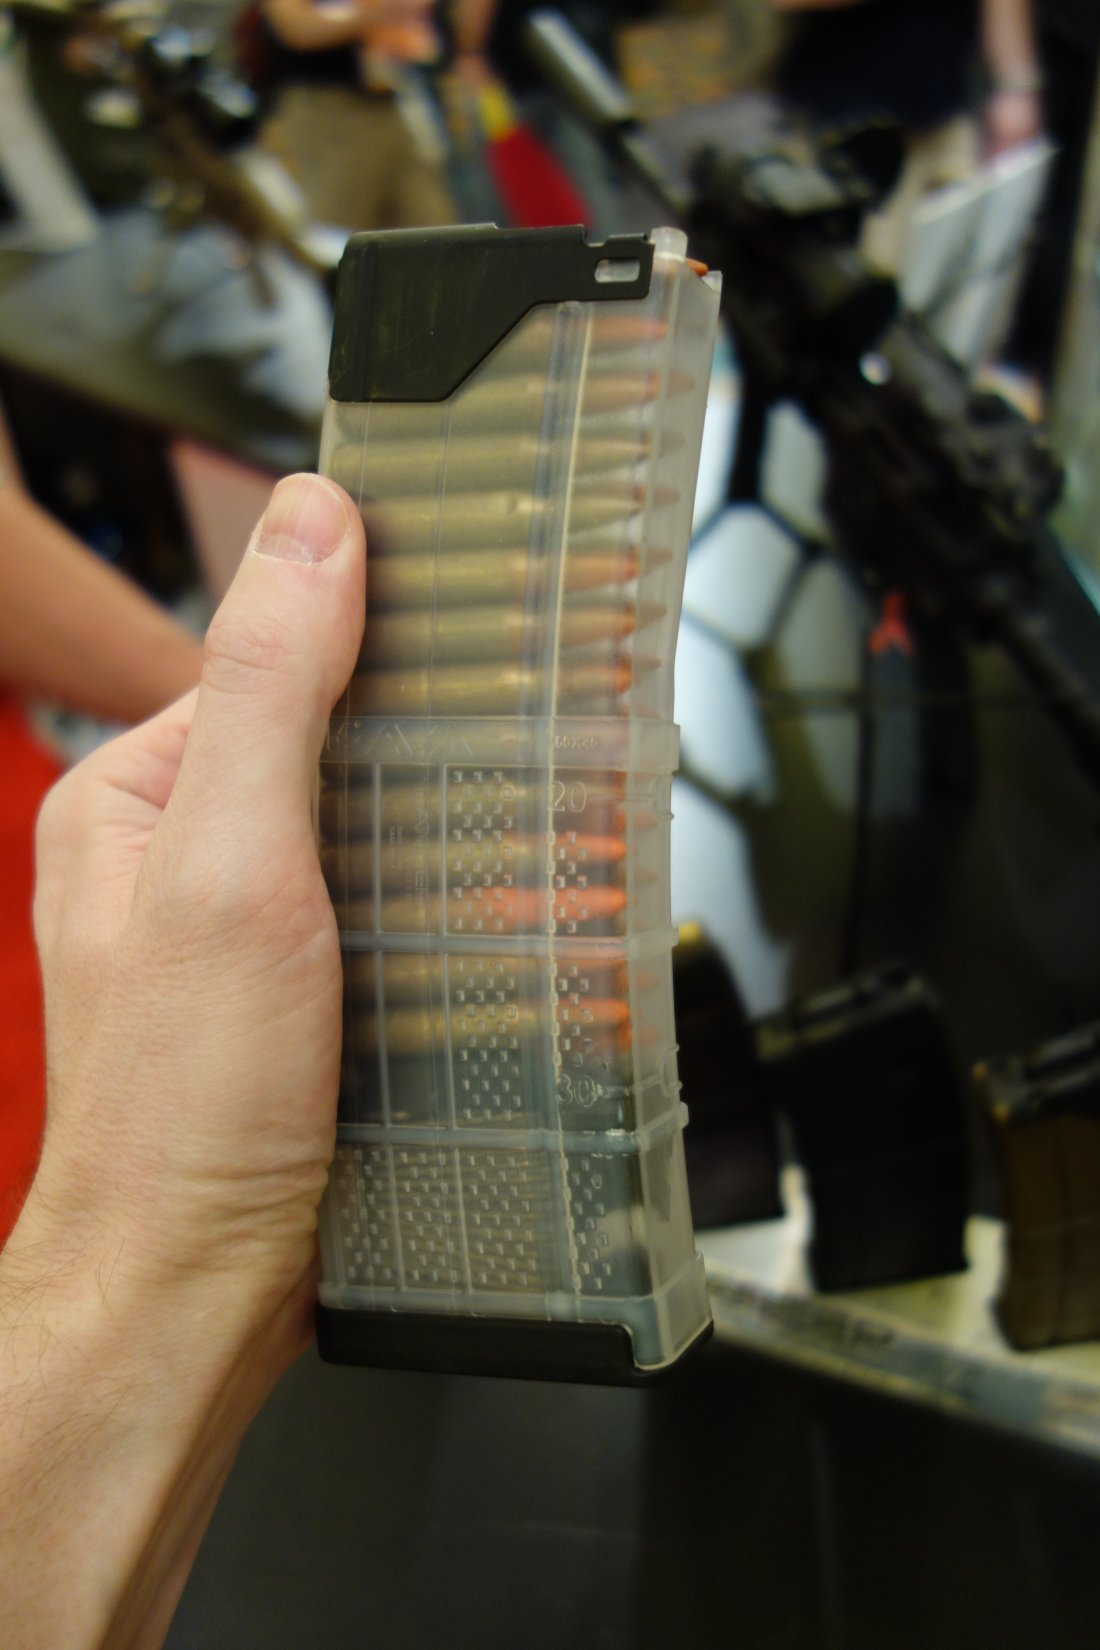 Lancer Systems Gen 2 L5 Translucent Advanced Warfighter Magazine AWM Polymer 30 Round 5.56mm AR 15 Rifle Mag SHOT Show 2013 David Crane DefenseReview.com DR 5 Gen 2 Lancer Systems L5 Translucent Advanced Warfighter Magazine (AWM): Truly Translucent Polymer 30 Round AR 15 Rifle/Carbine/SBR Mag!